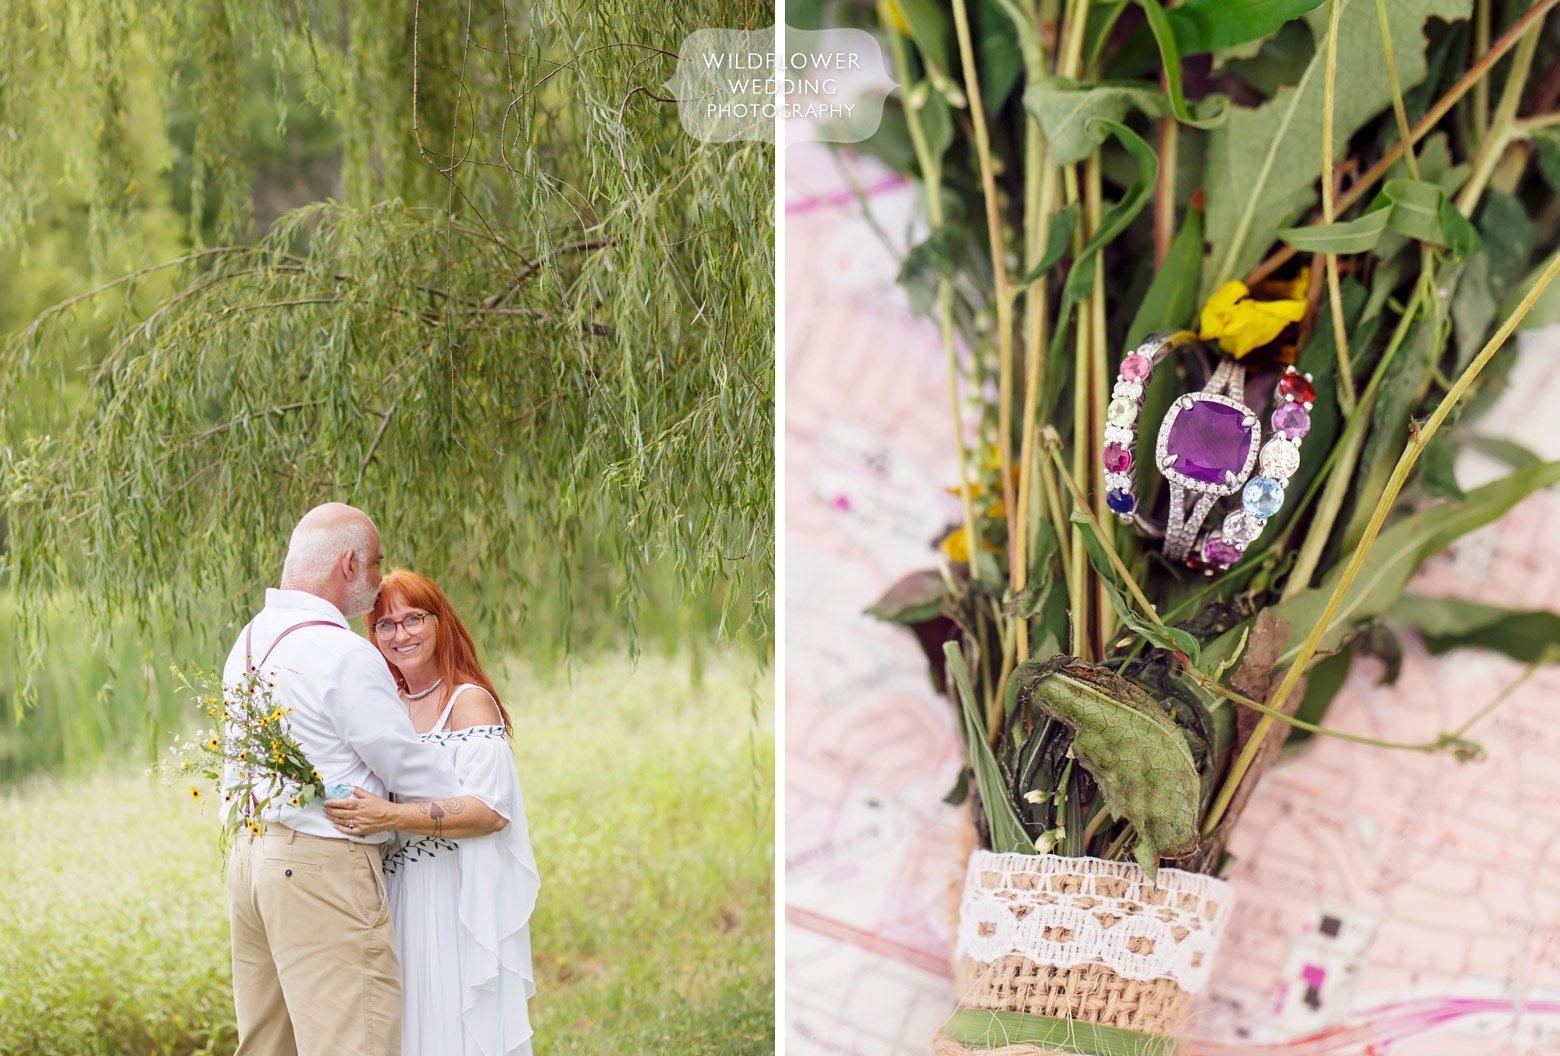 Missouri backyard wedding photographer captures bride and groom stand under a weeping willow.